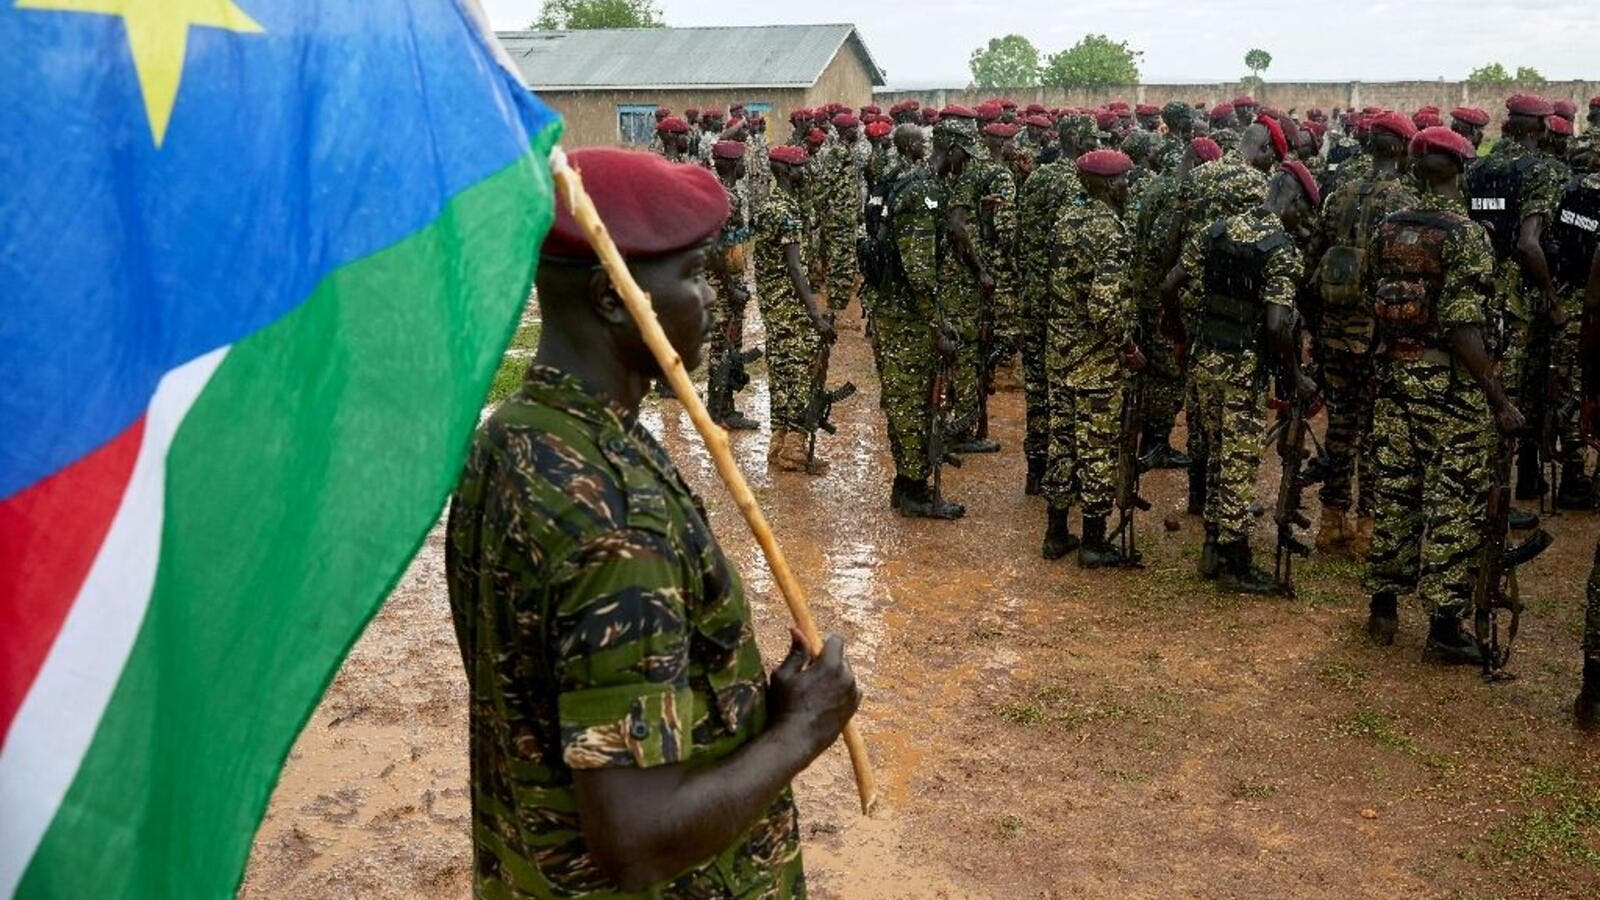 Members of South Sudan People's Defence Forces (SSPDF), formerly named Sudan People's Liberation Army (SPLA), assigned as South Sudan's presidential guard drill at their barracks just south of the capital Juba (AFP /Alex McBride)